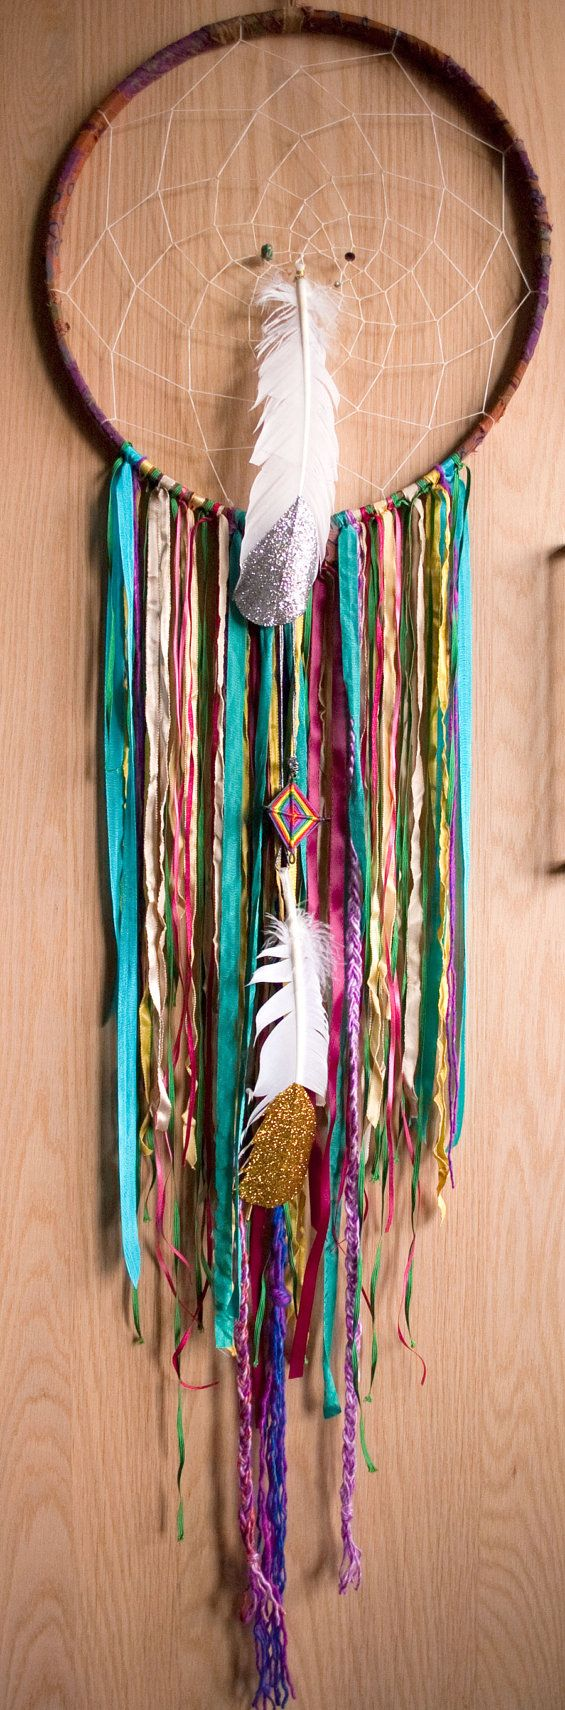 Bohemian Spirit Dream catcher